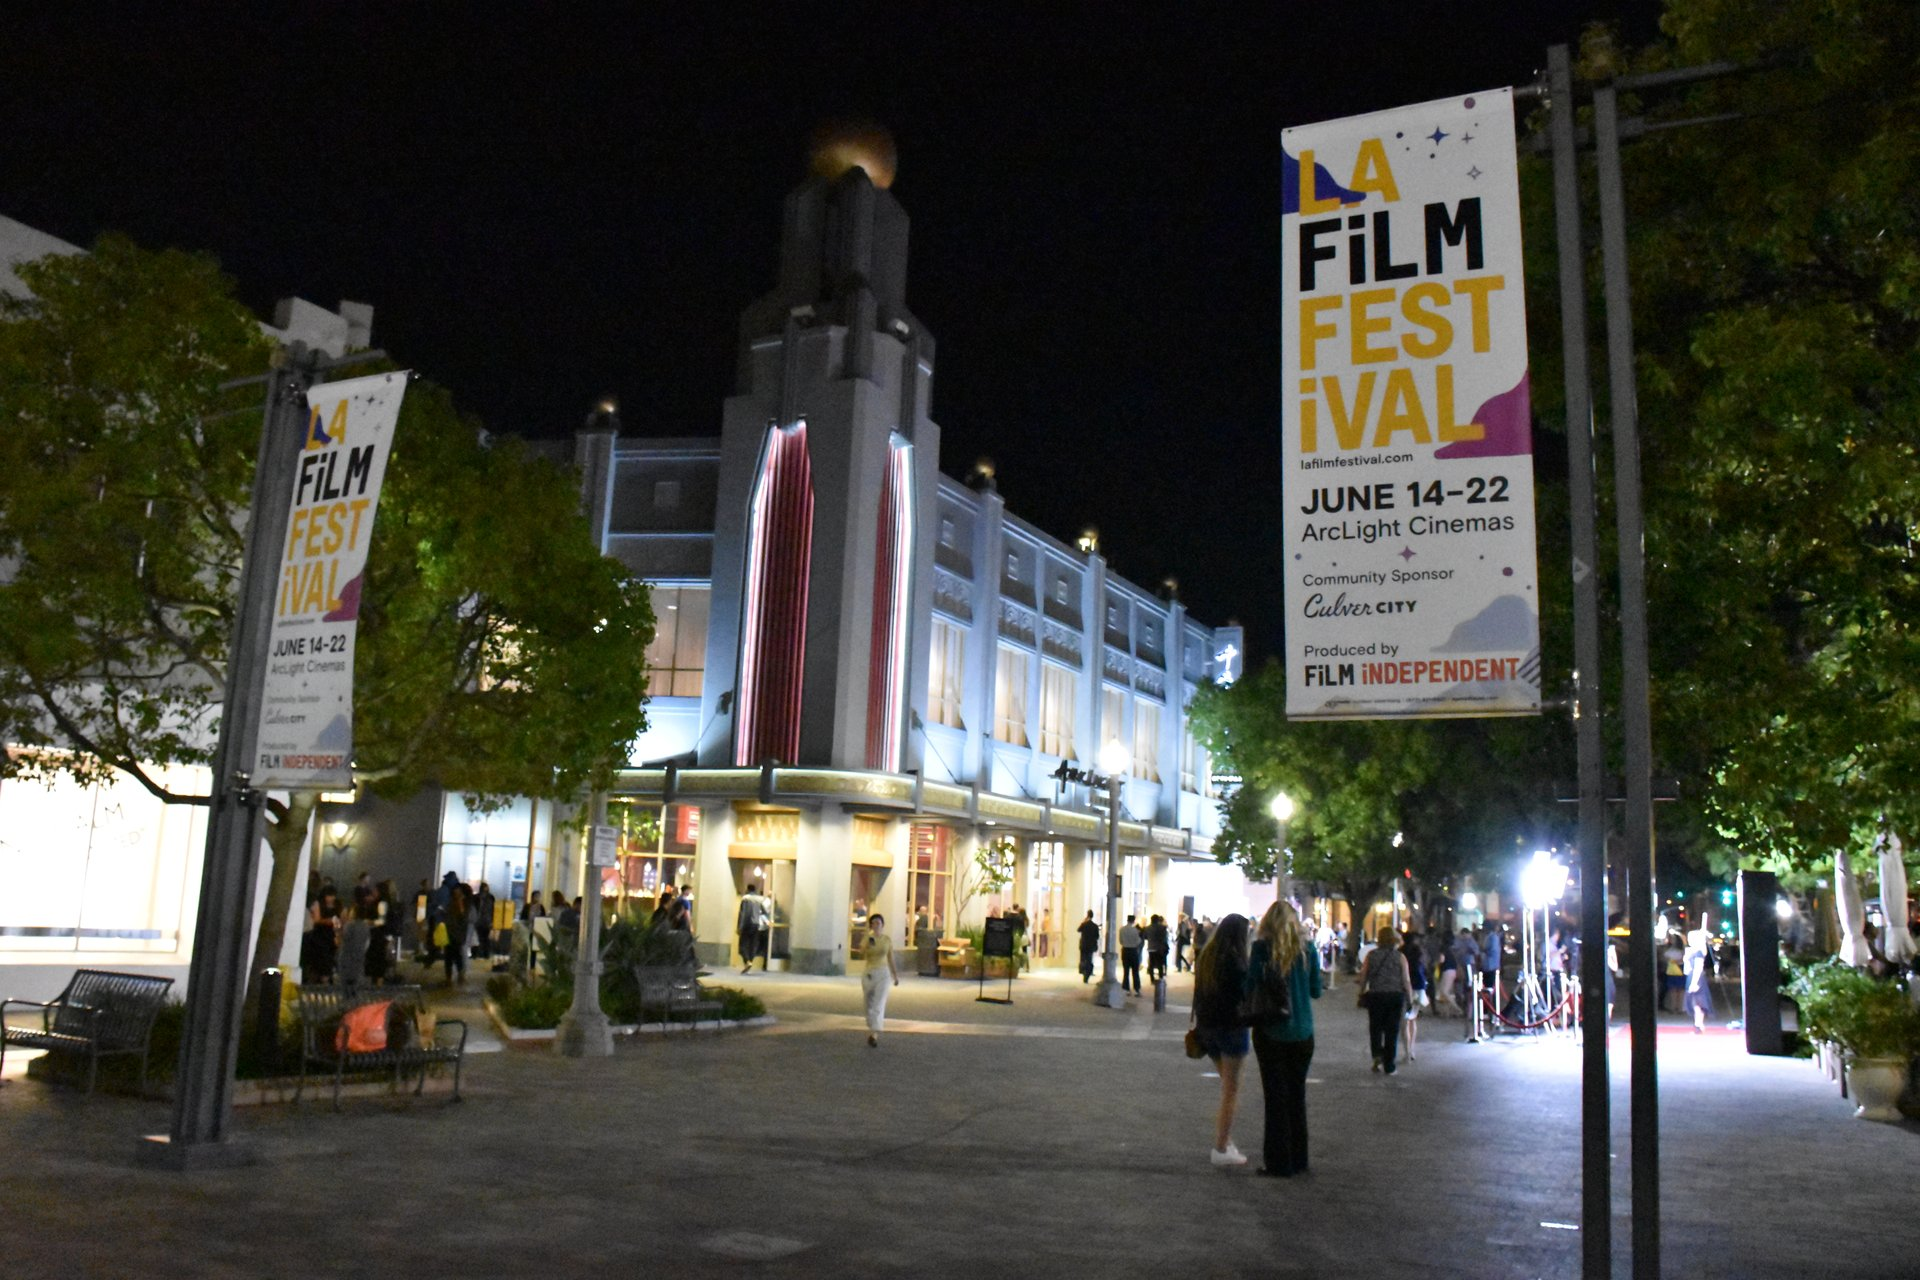 LA Film Festival in Los Angeles 2019 - Best Time